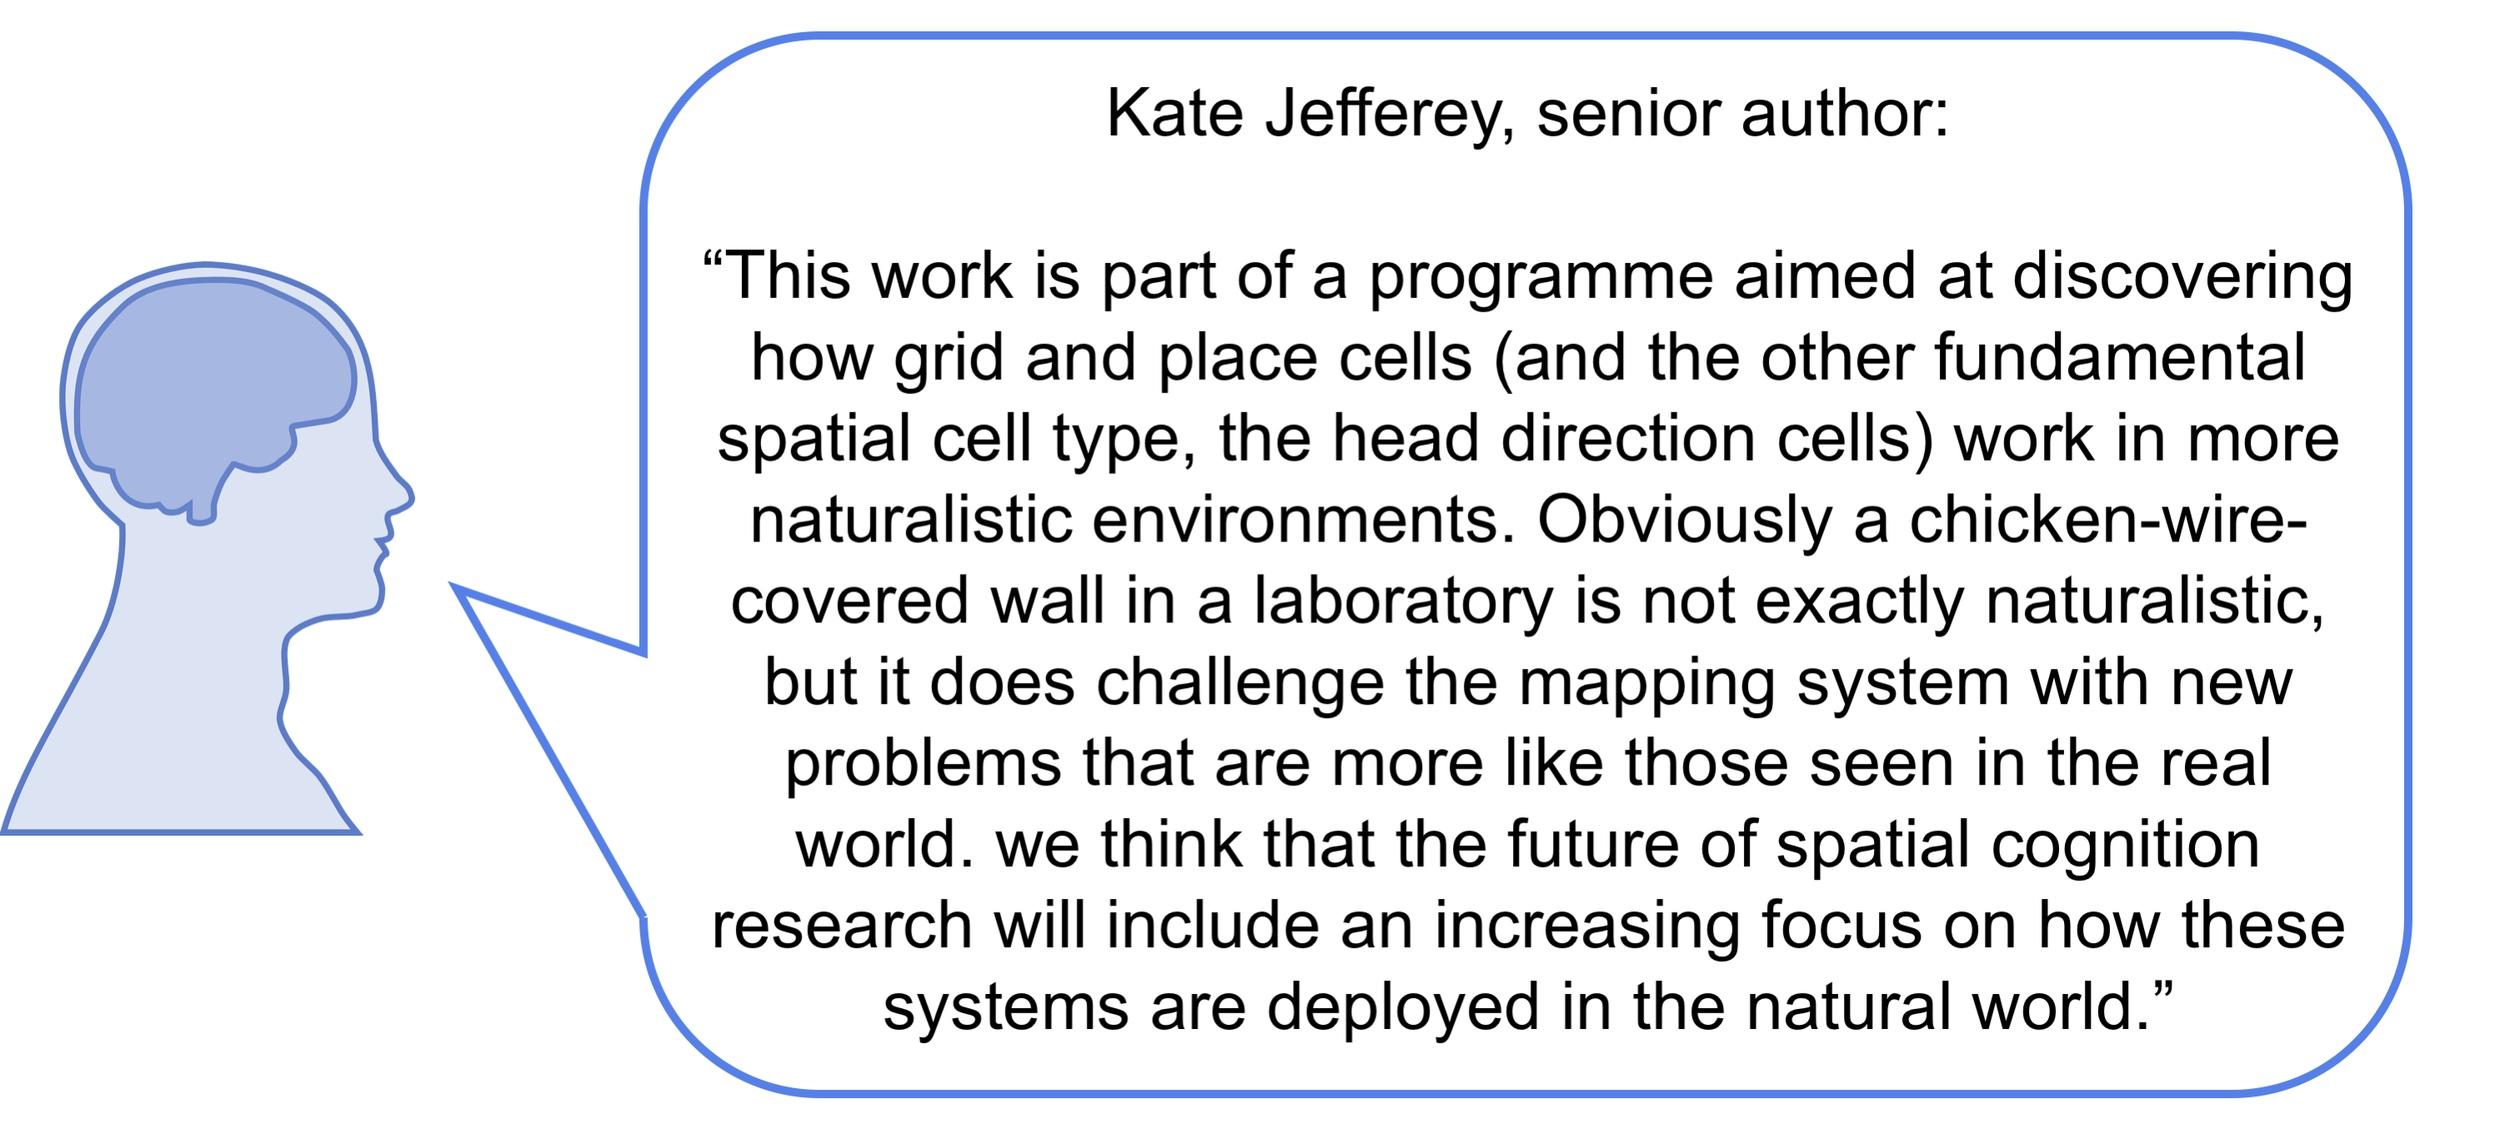 Kate_Jefferey_Quote_March12.jpg